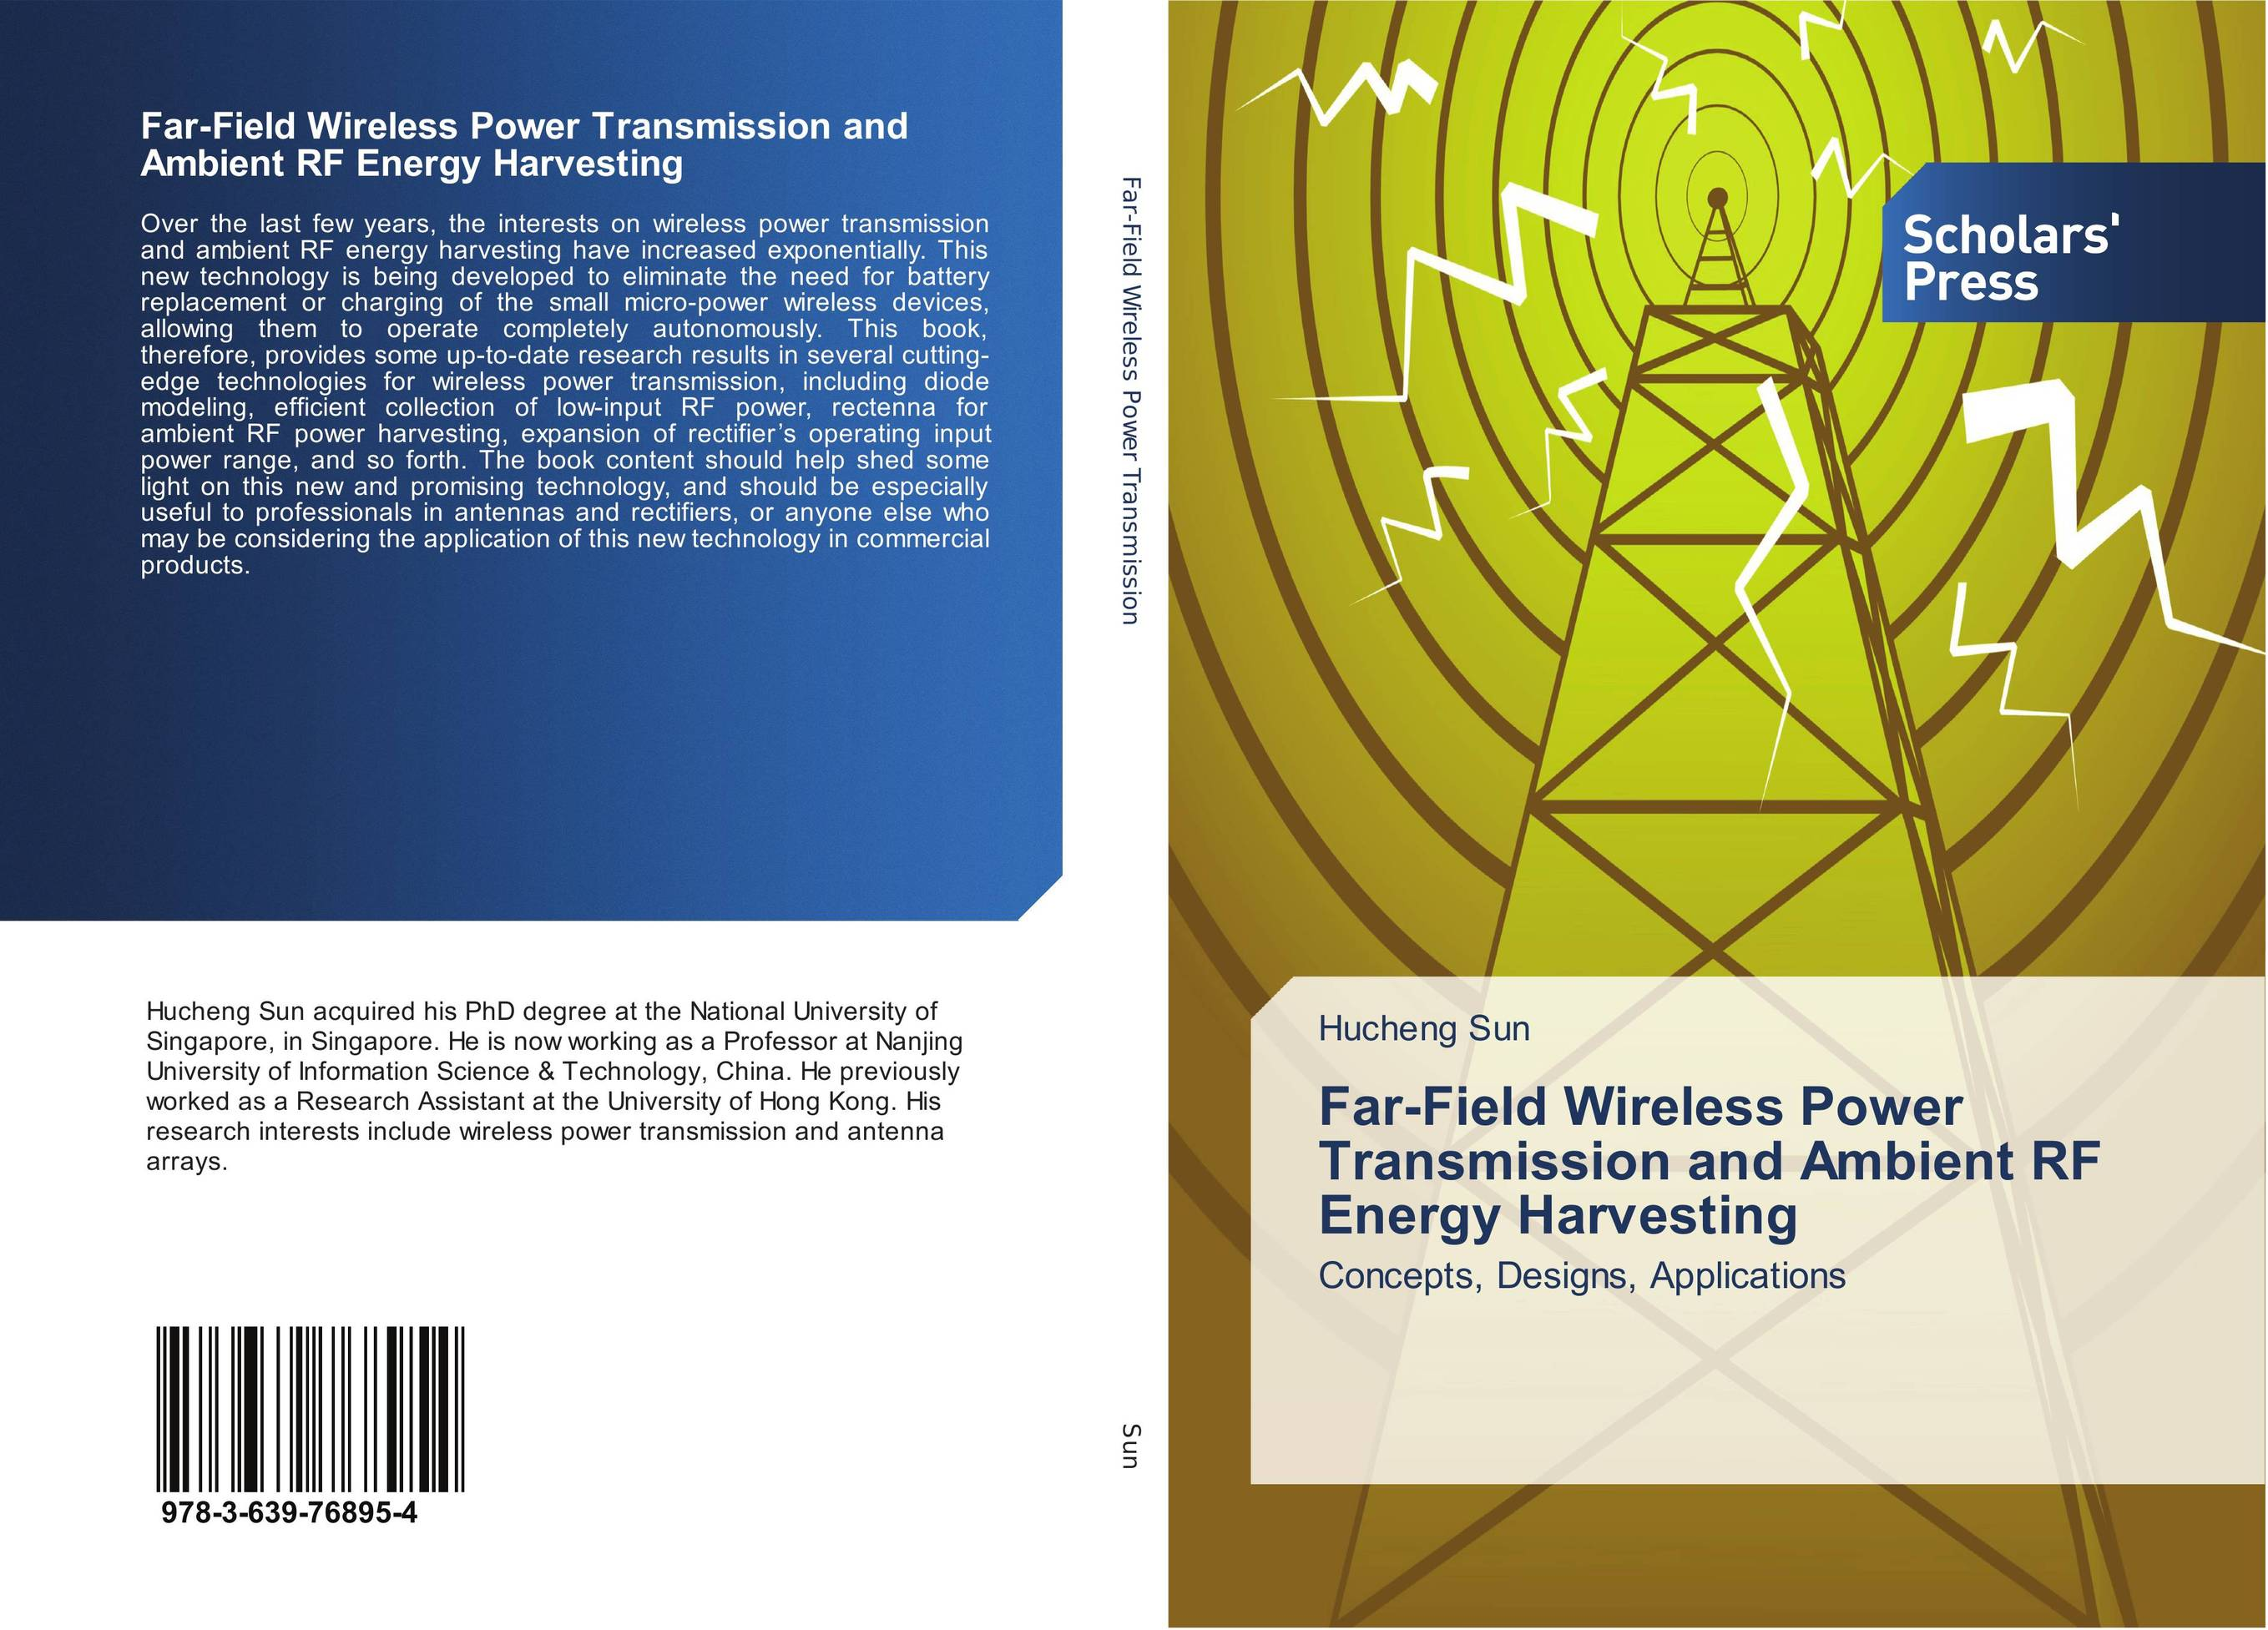 Far-Field Wireless Power Transmission and Ambient RF Energy Harvesting